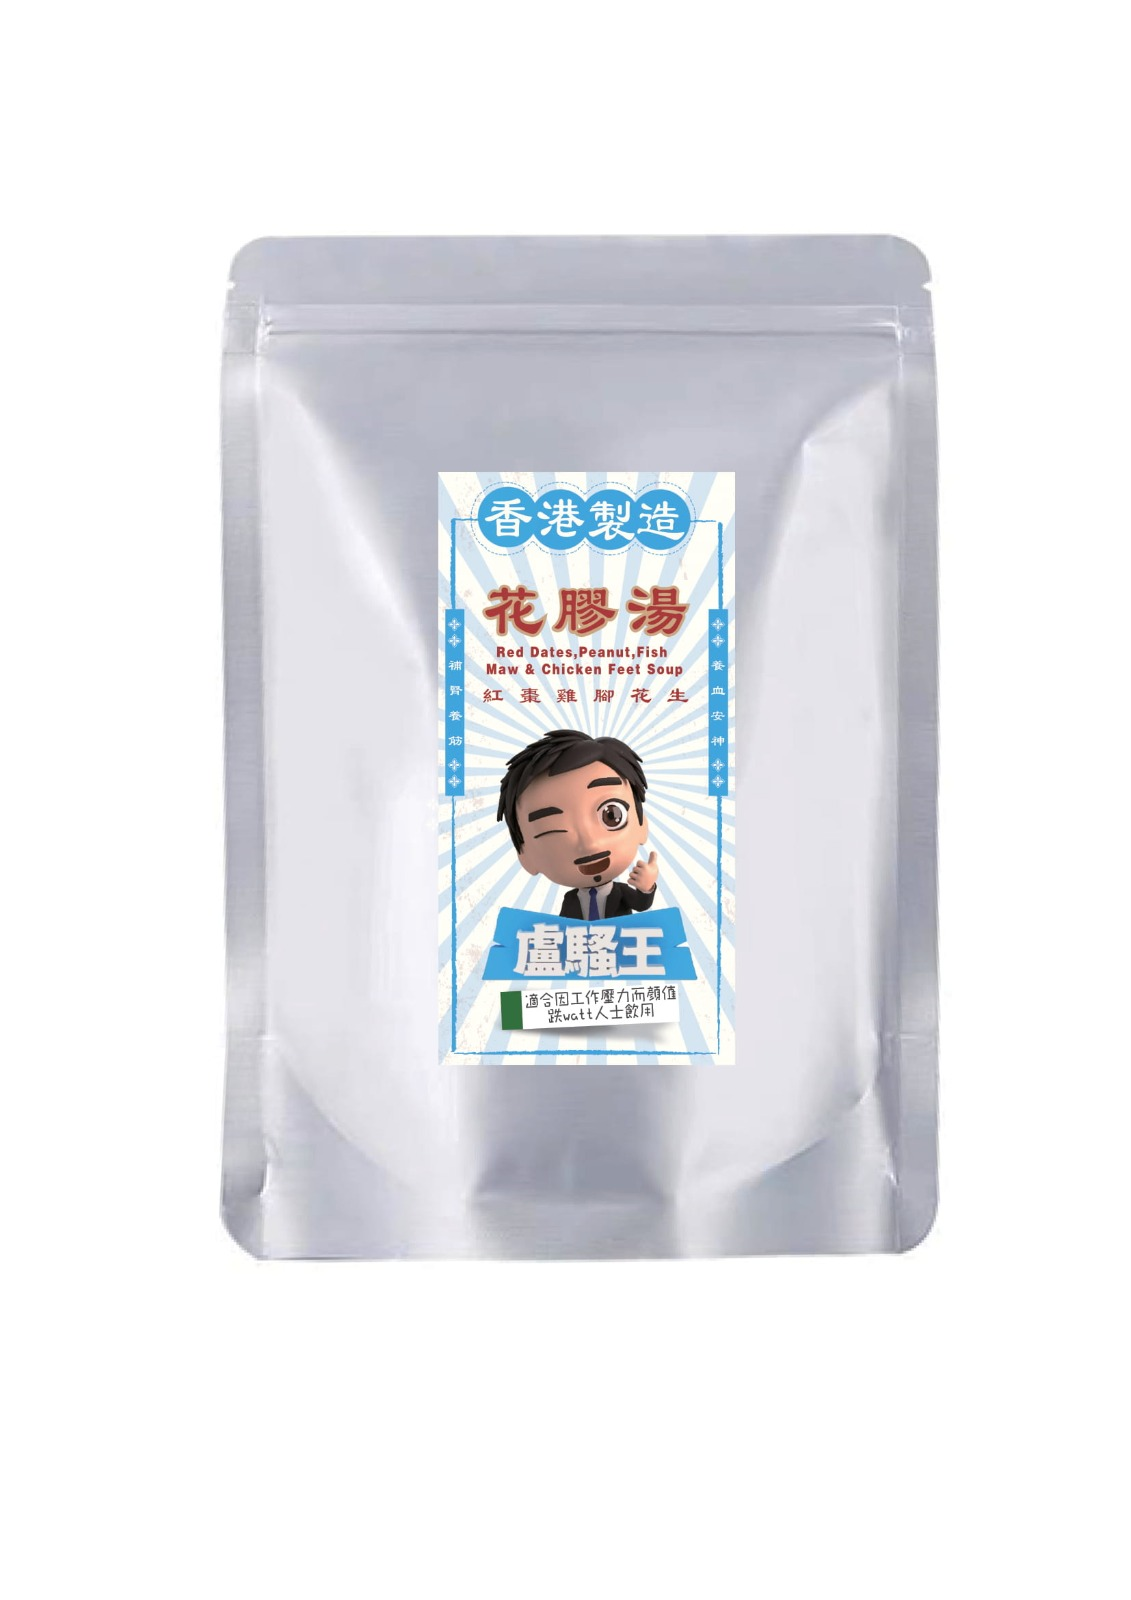 Losooking Series: Red Dates, Peanut, Fish Maw & Chicken Feet Soup (New Product)